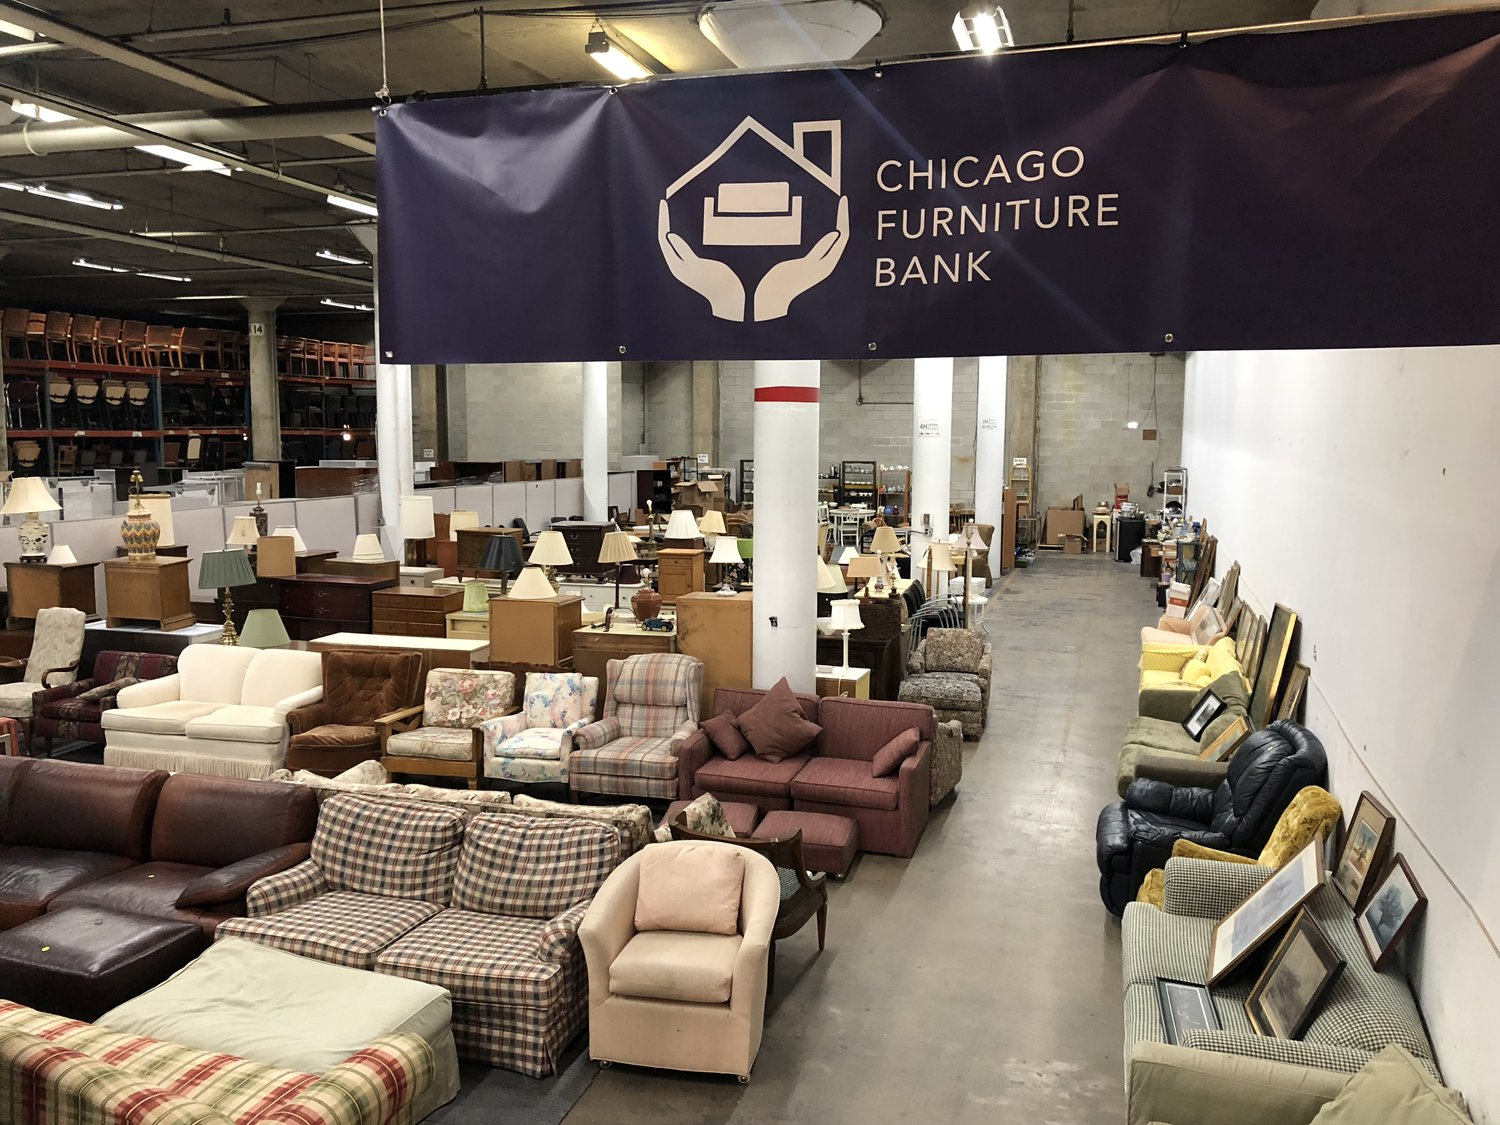 Whp Maf Home Chicago Furniture Bank